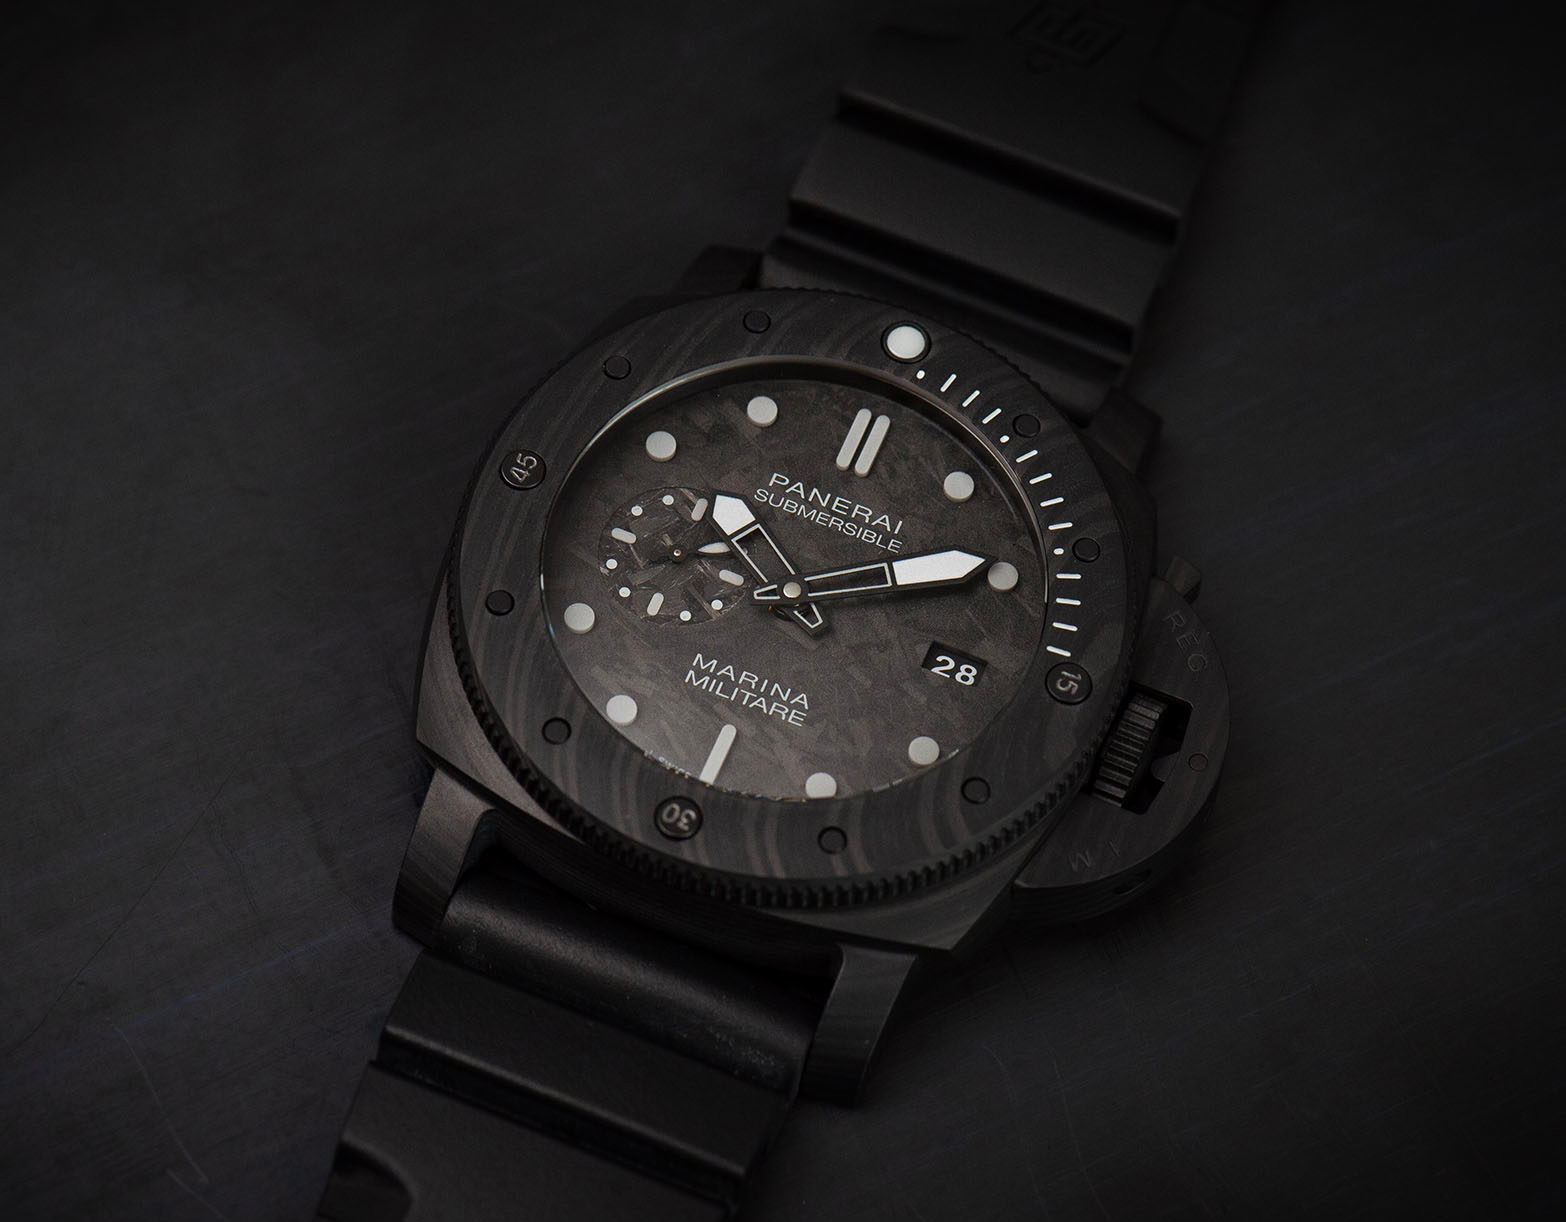 Get a New Panerai Submersible & Train with the Italian Navy at werd.com